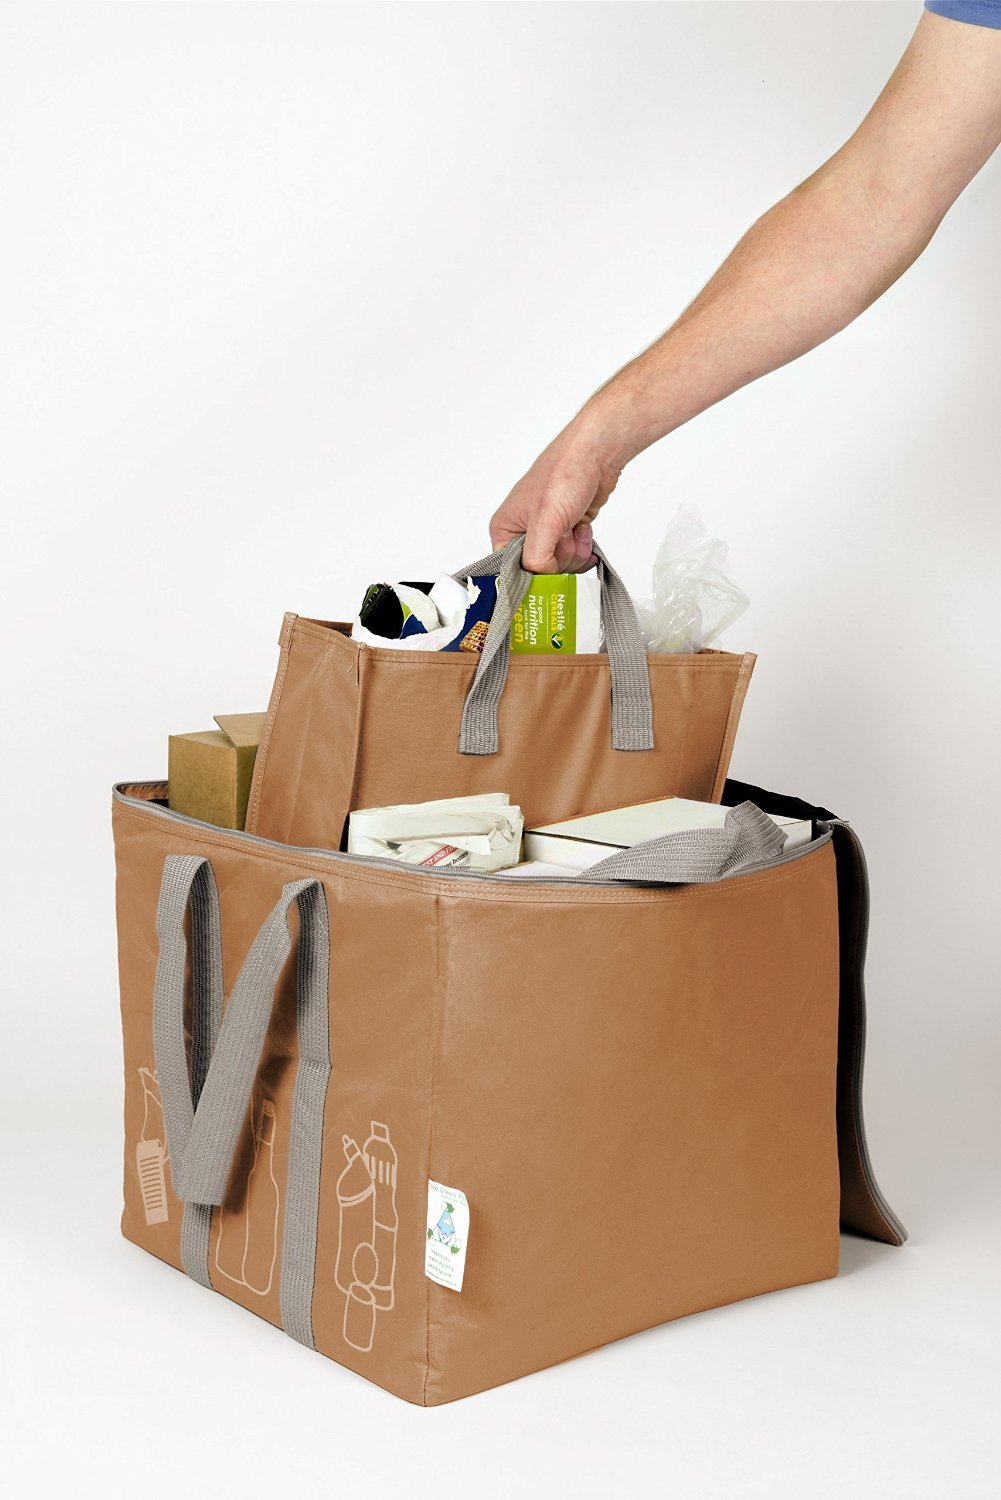 The Patented Green Pod Recycling Bag - with removable bags inside (Brown,80 Litre) by Element Green Recycling